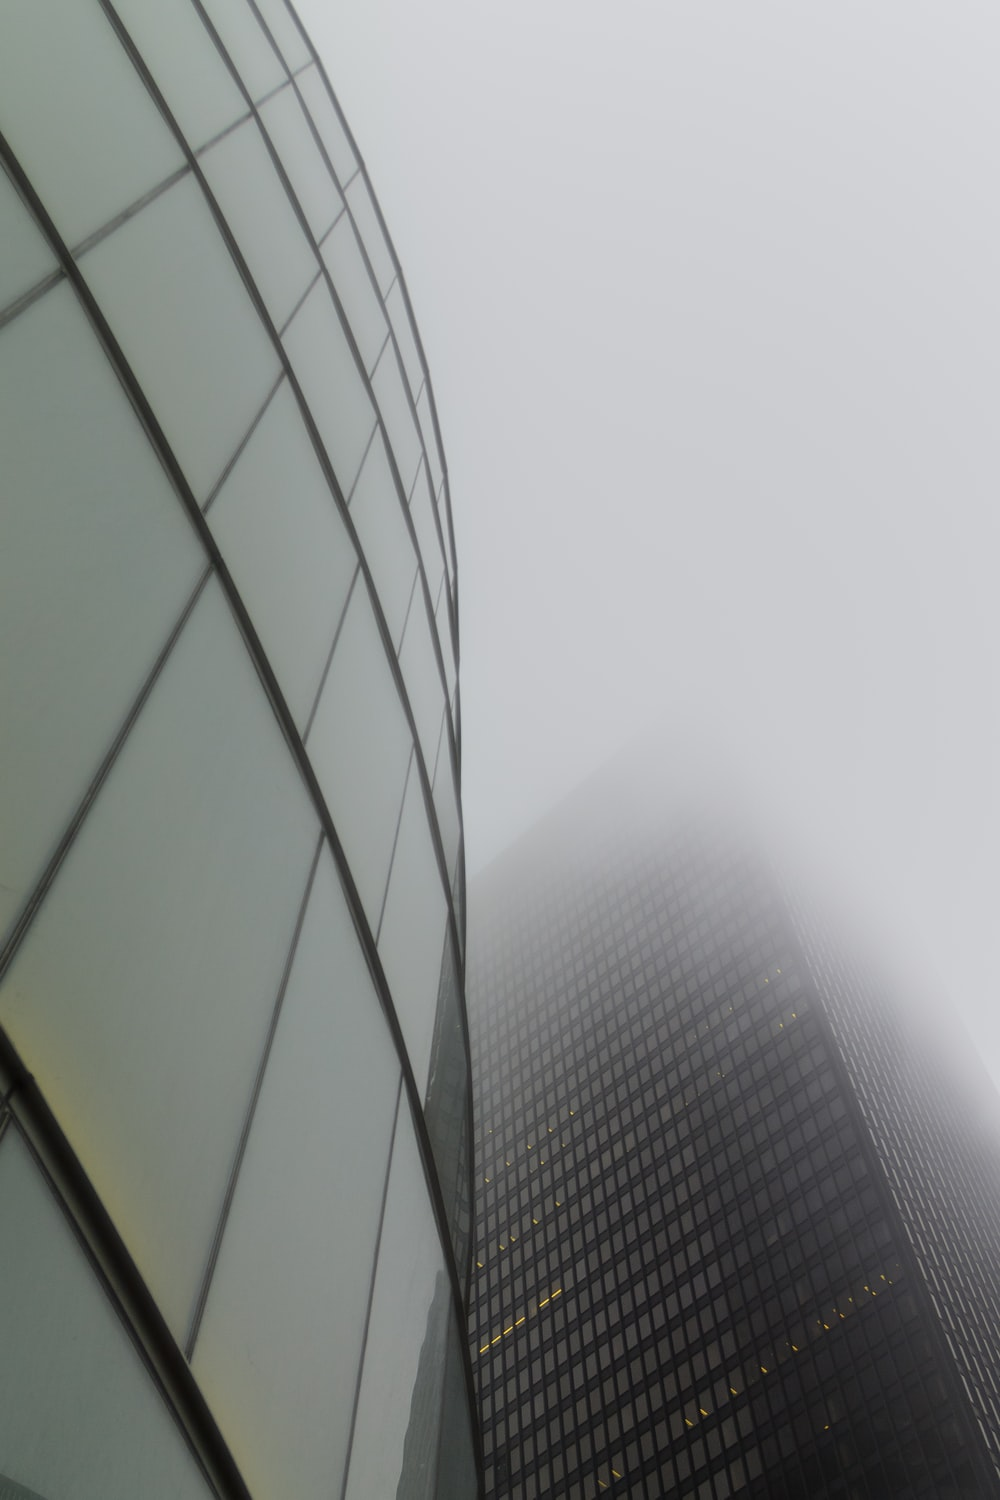 glass building under white sky during daytime